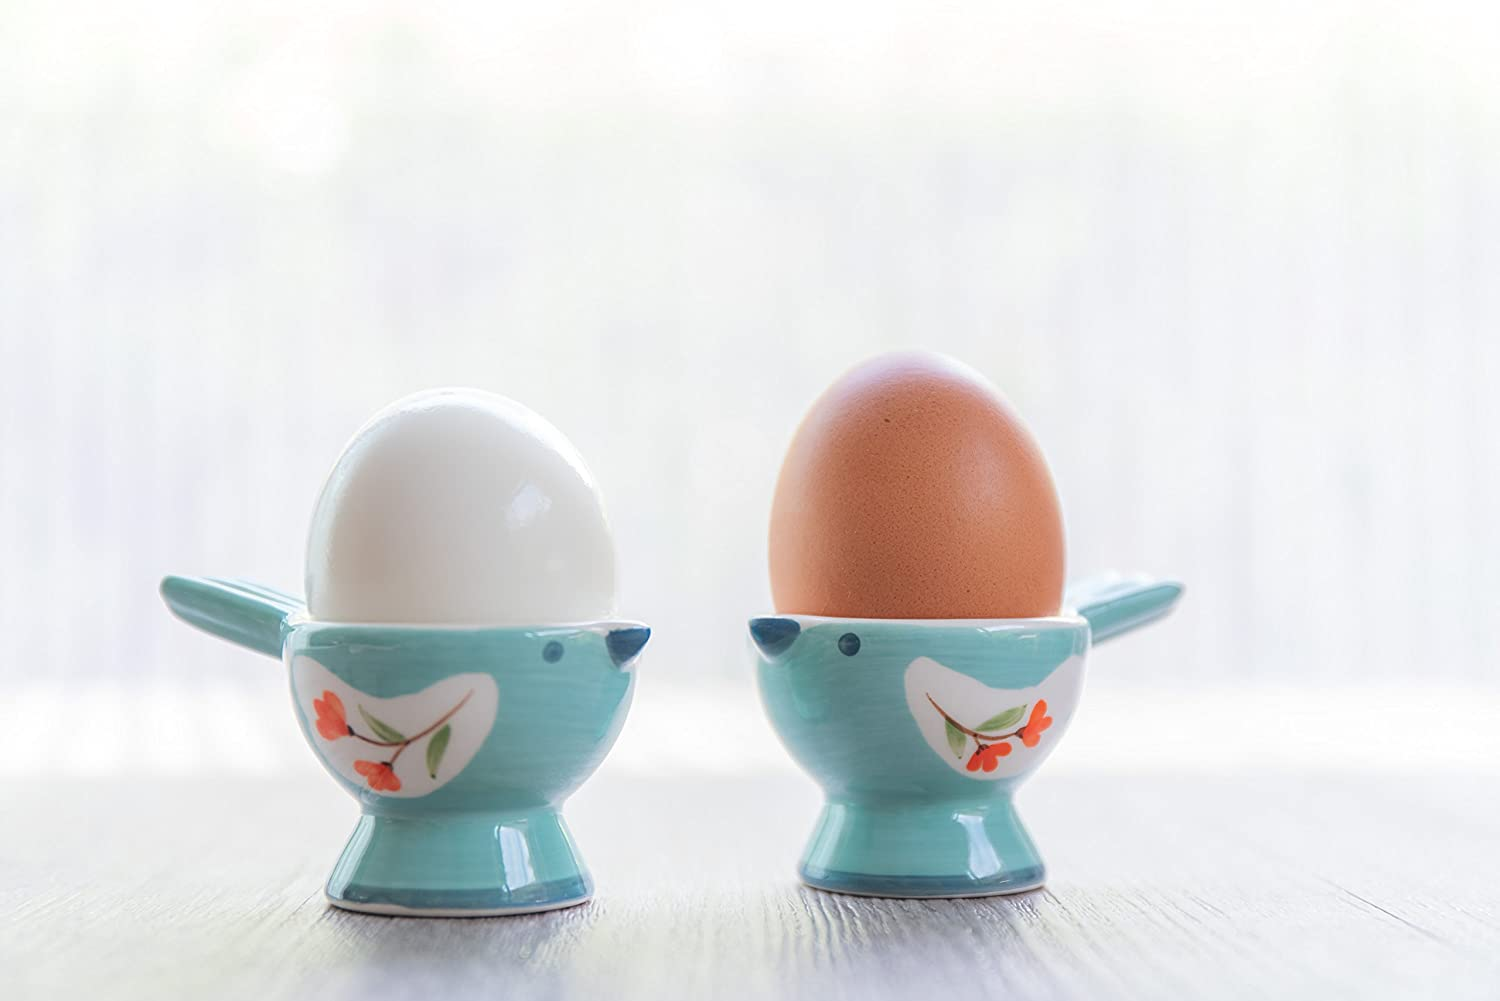 WD- FB38-2 Pcs Cute Bird Shape Ceramic soft or Hard boiled egg cup holder (Egg holder) - for Breakfast Brunch Soft Boiled Egg Holder Container Stand Set Sky color